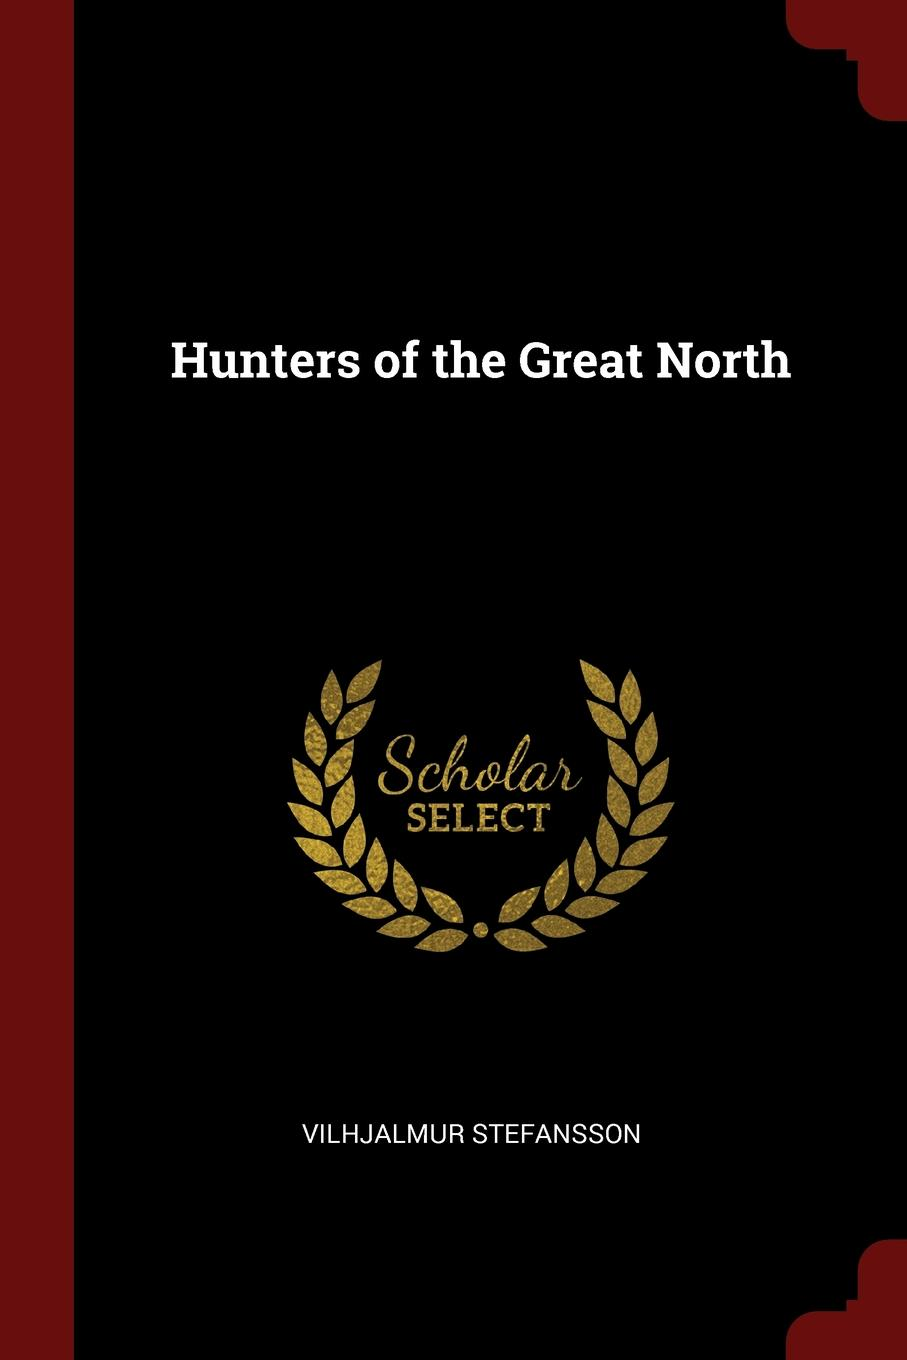 Vilhjalmur Stefansson Hunters of the Great North